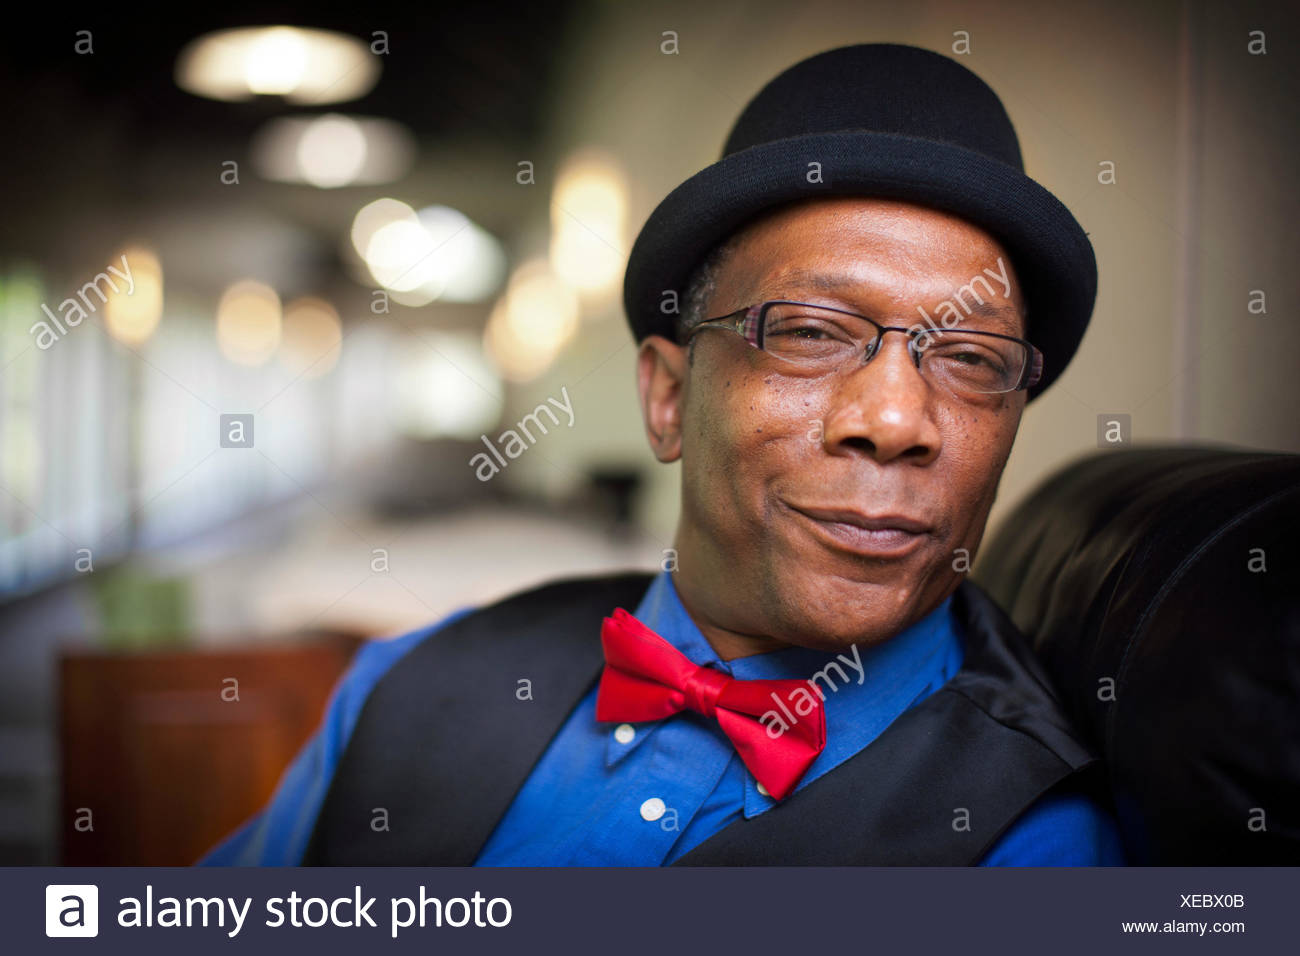 An african american man wearing a hat, vest and a red bow tie looks forward. - Stock Image